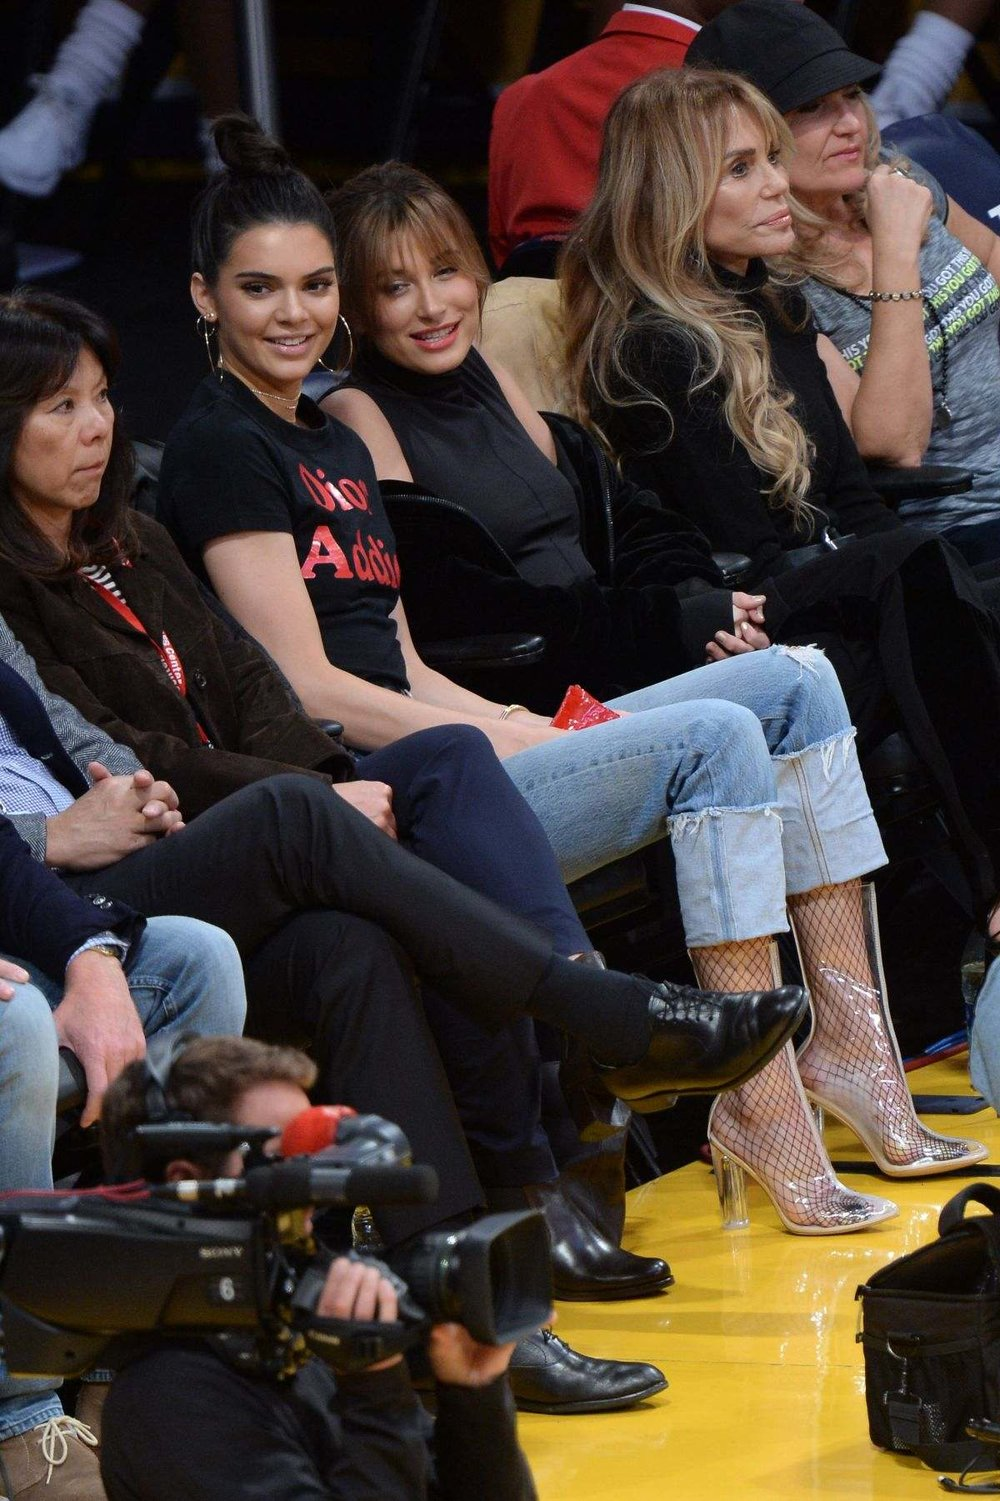 Kendall Jenner and Hailey Baldwin at the LA Laker Game 01.03.17